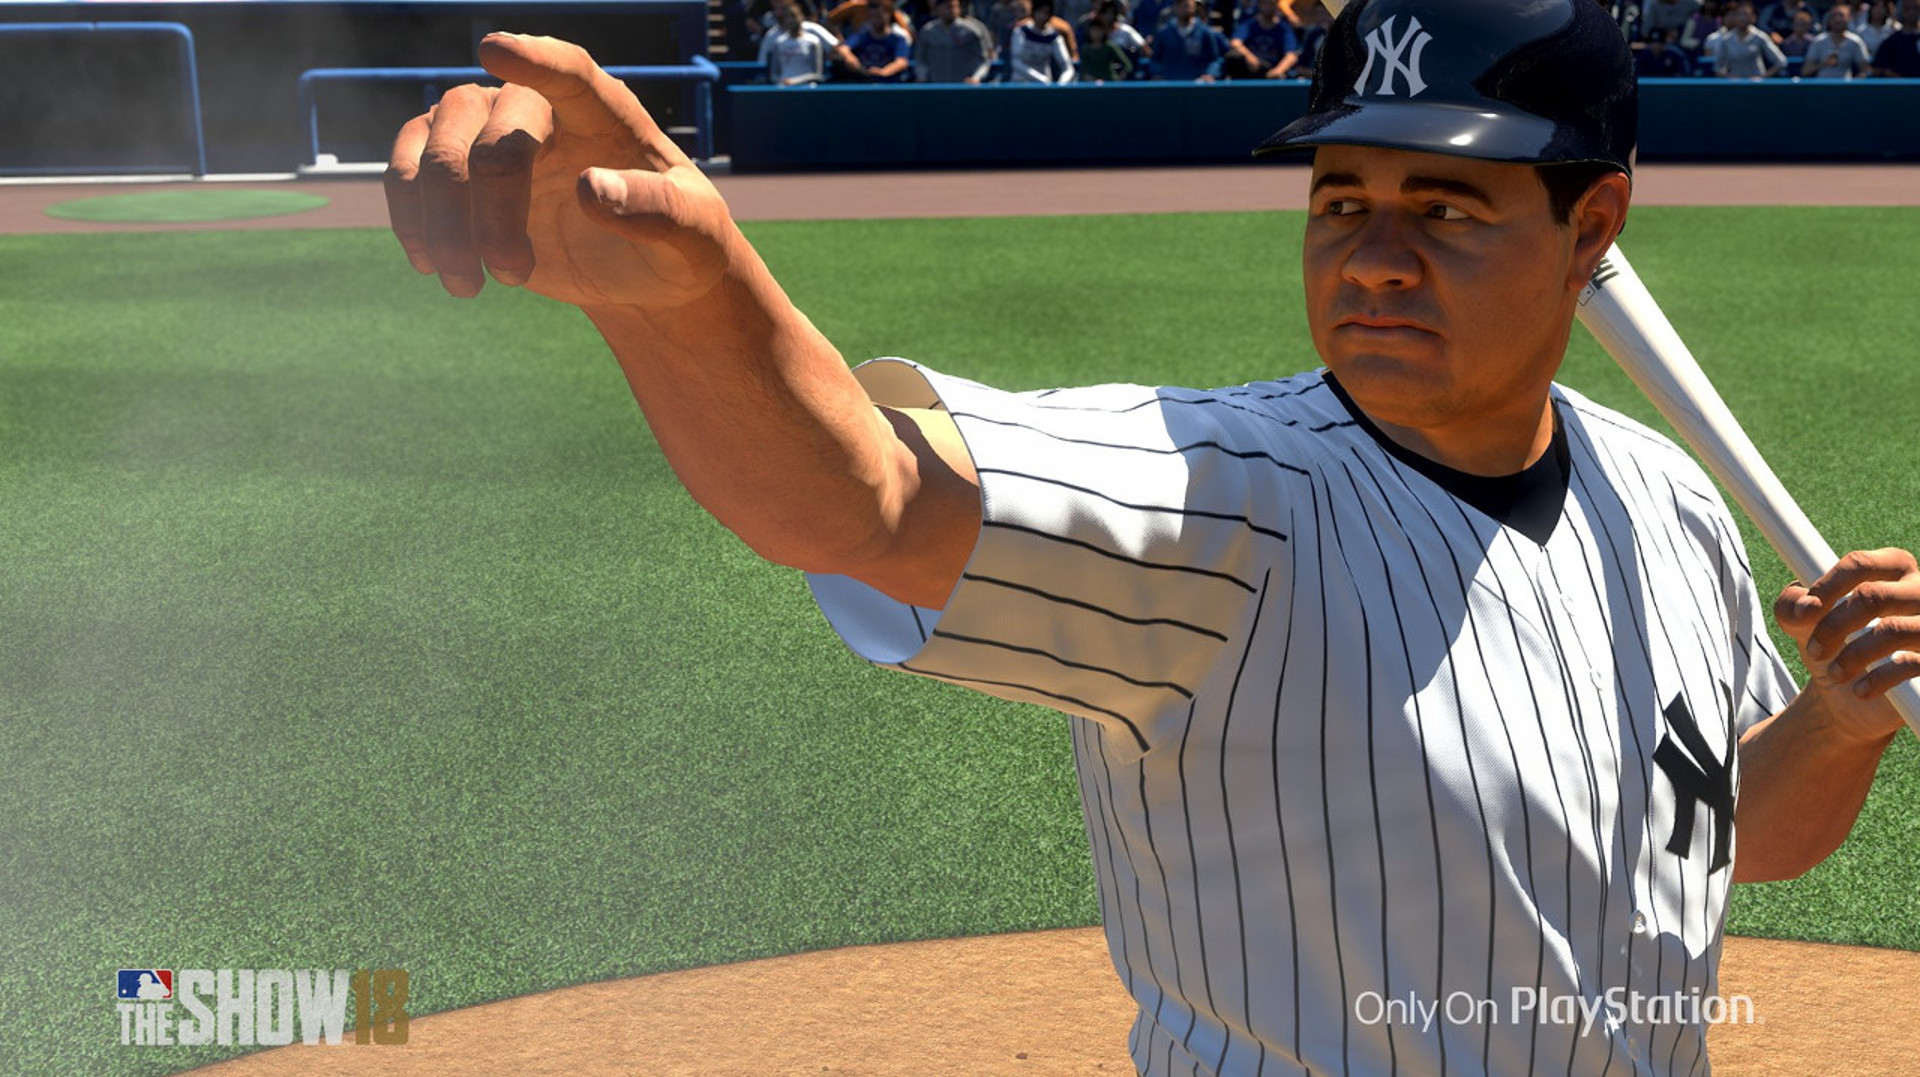 MLB The Show 18 trailer teases a playable Babe Ruth